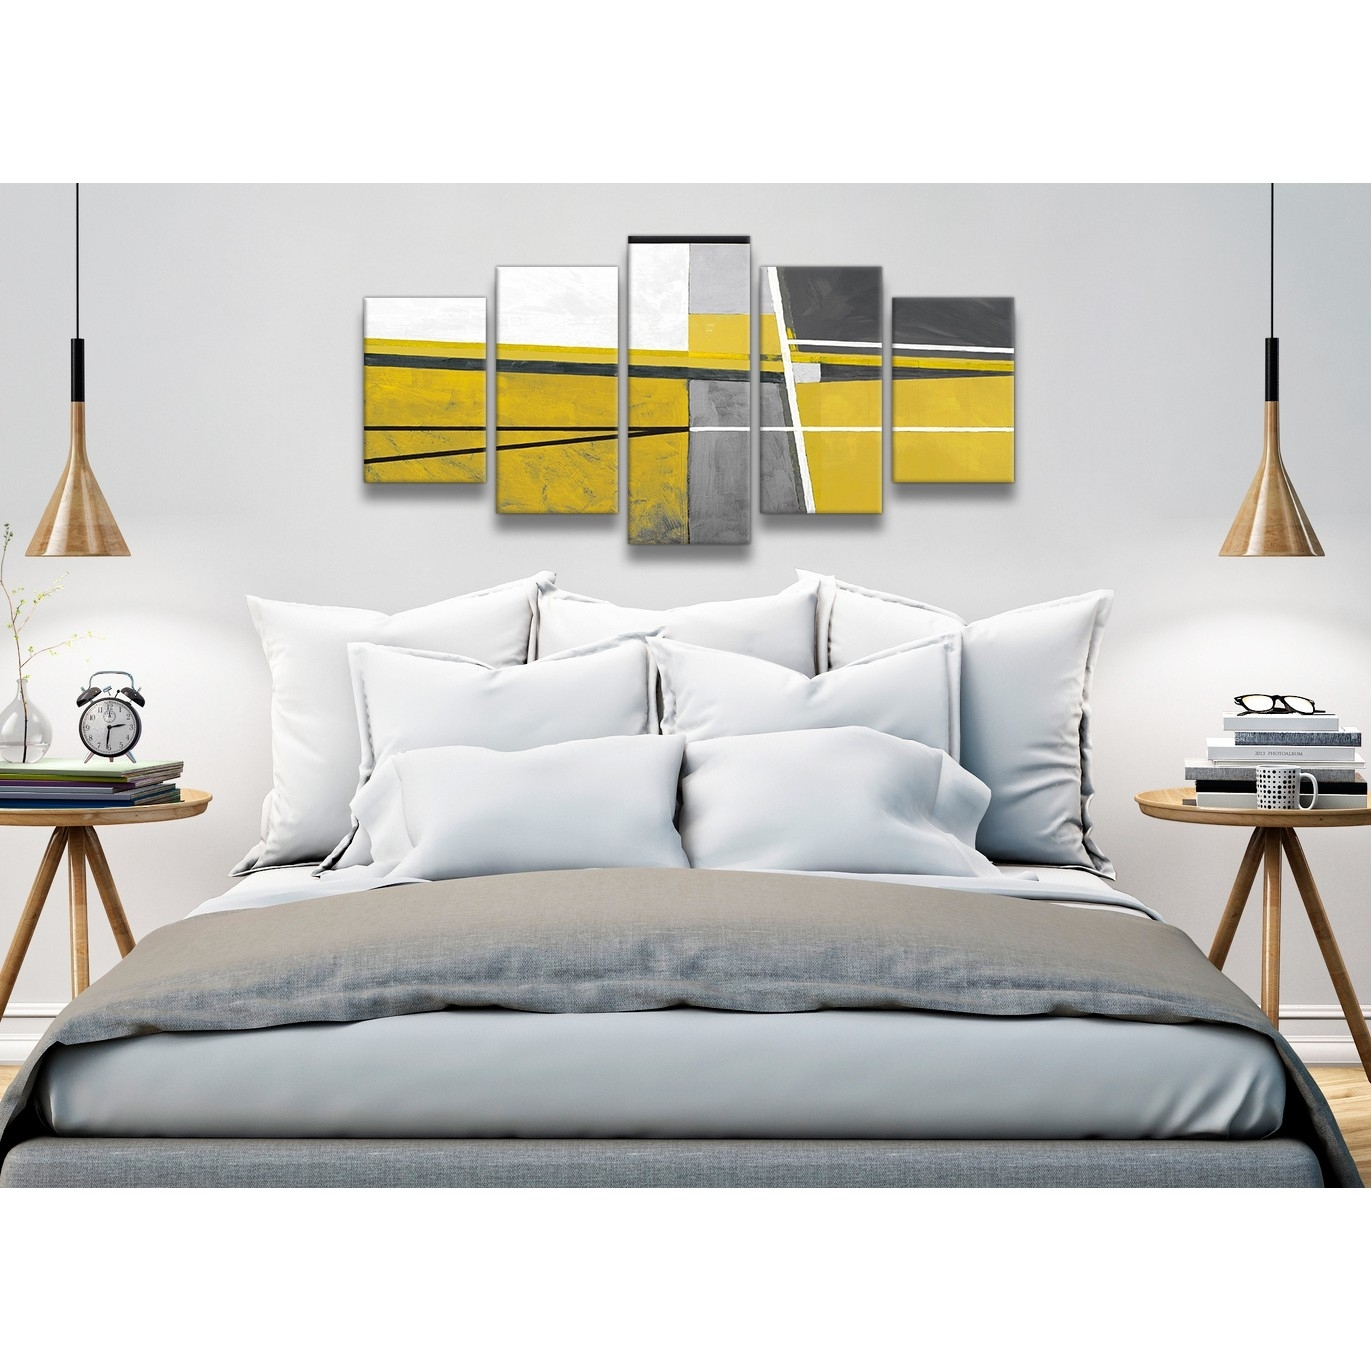 5 Panel Mustard Yellow Grey Painting Abstract Bedroom Canvas Regarding Recent Wall Art For Bedroom (View 2 of 15)